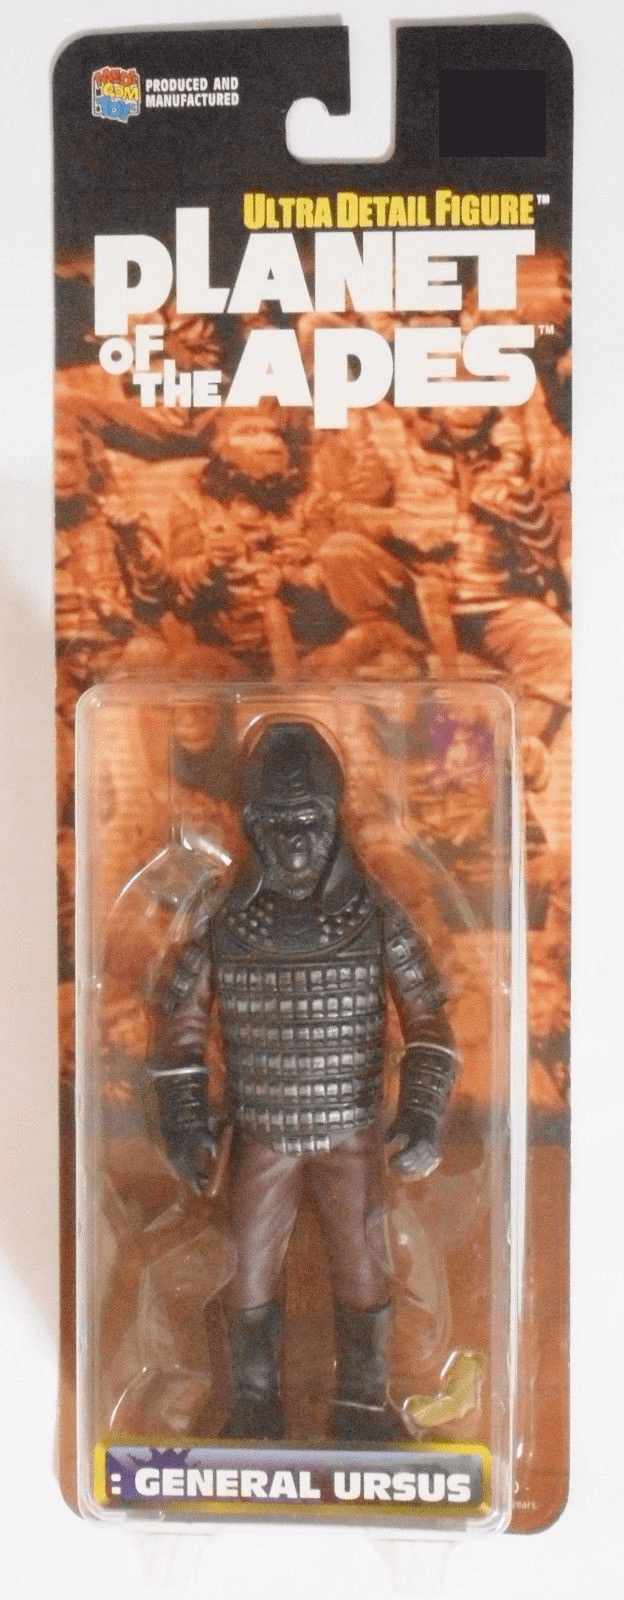 Medicom UDF Planet of the Apes General Ursus Figure